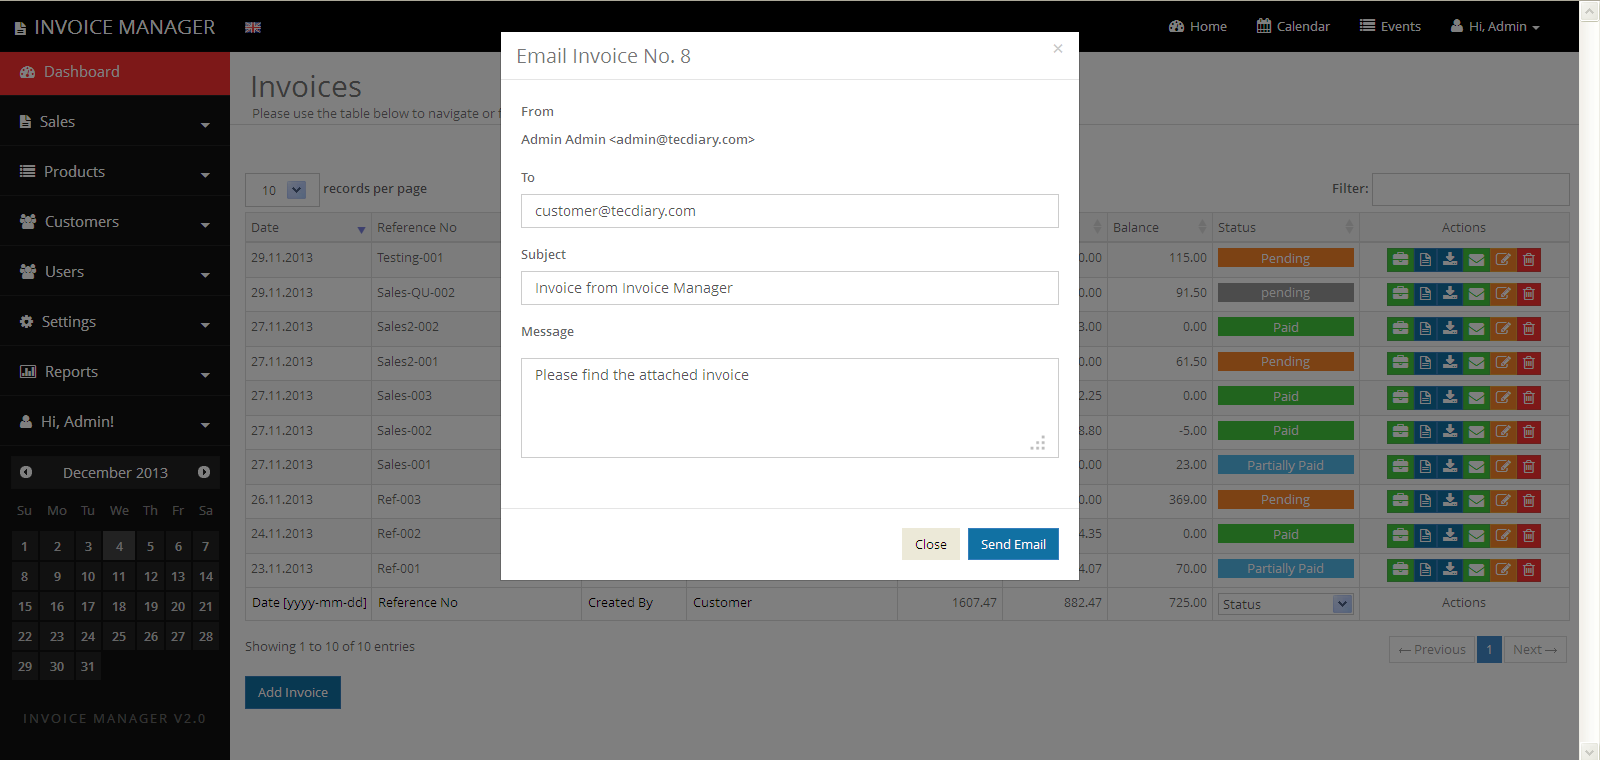 simple invoice manager - invoicing made easy by tecdiary | codecanyon, Simple invoice